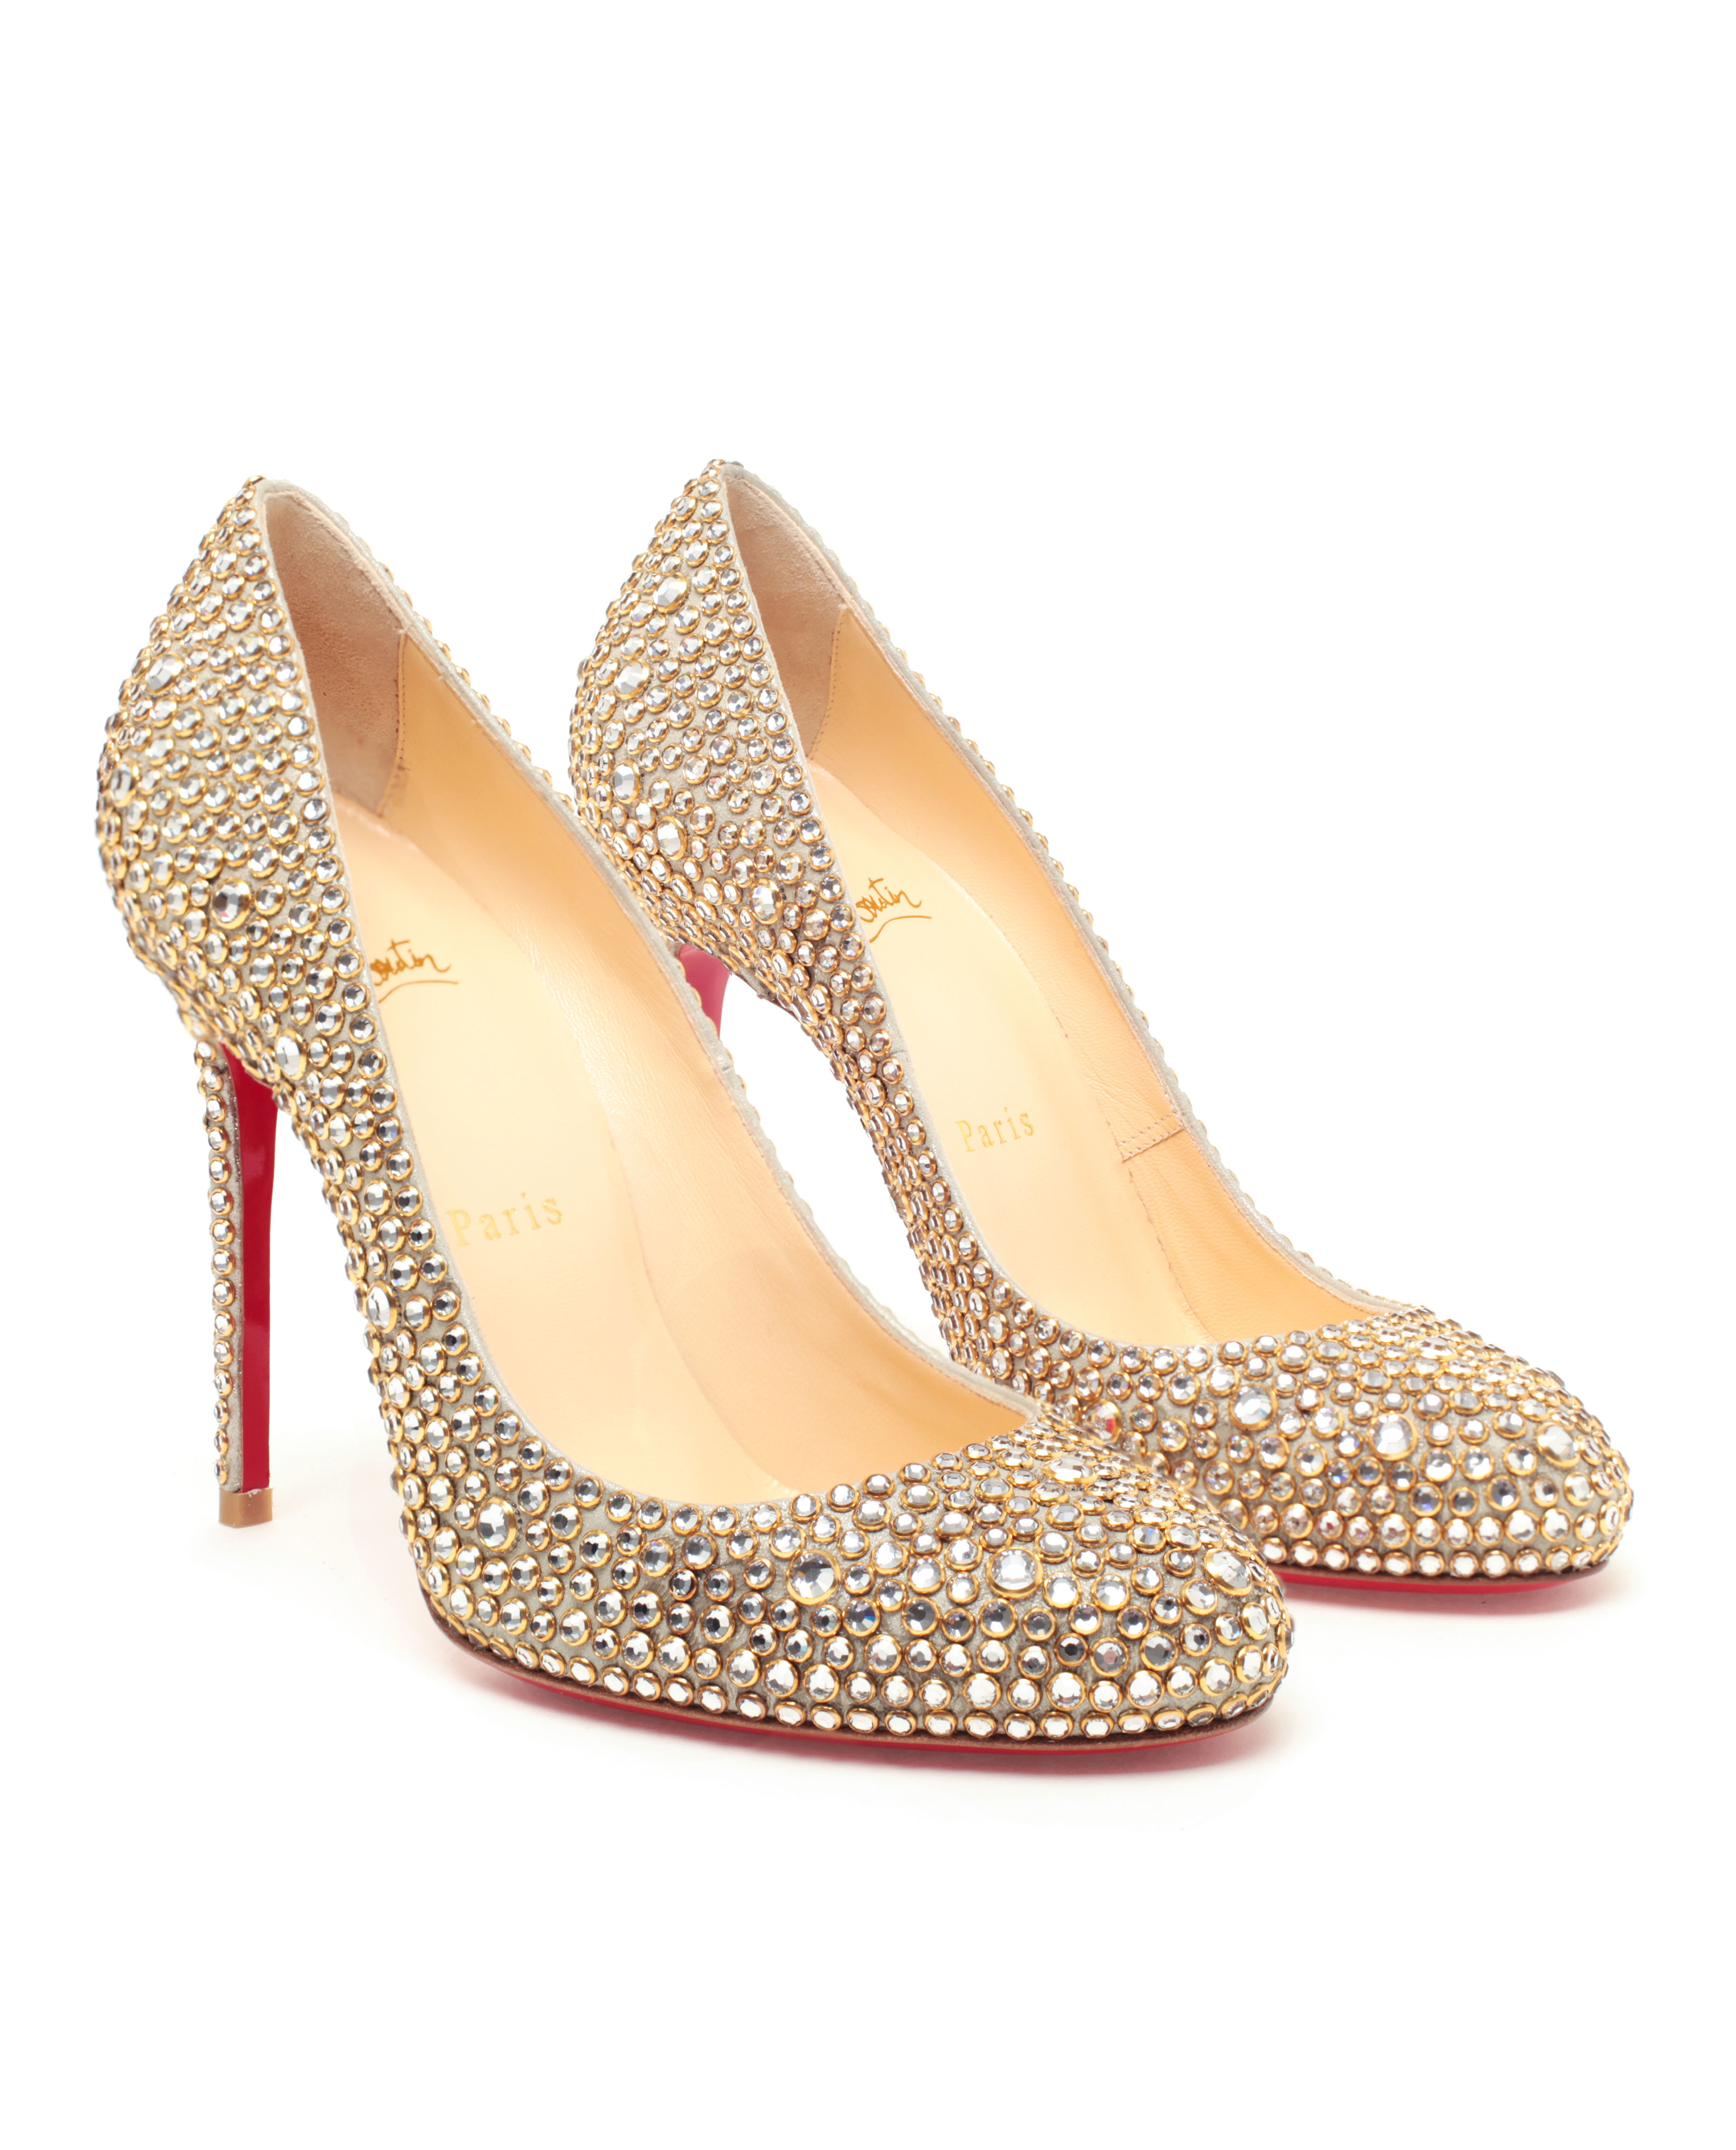 christian louboutin peep-toe platform pumps Yellow suede stud ...